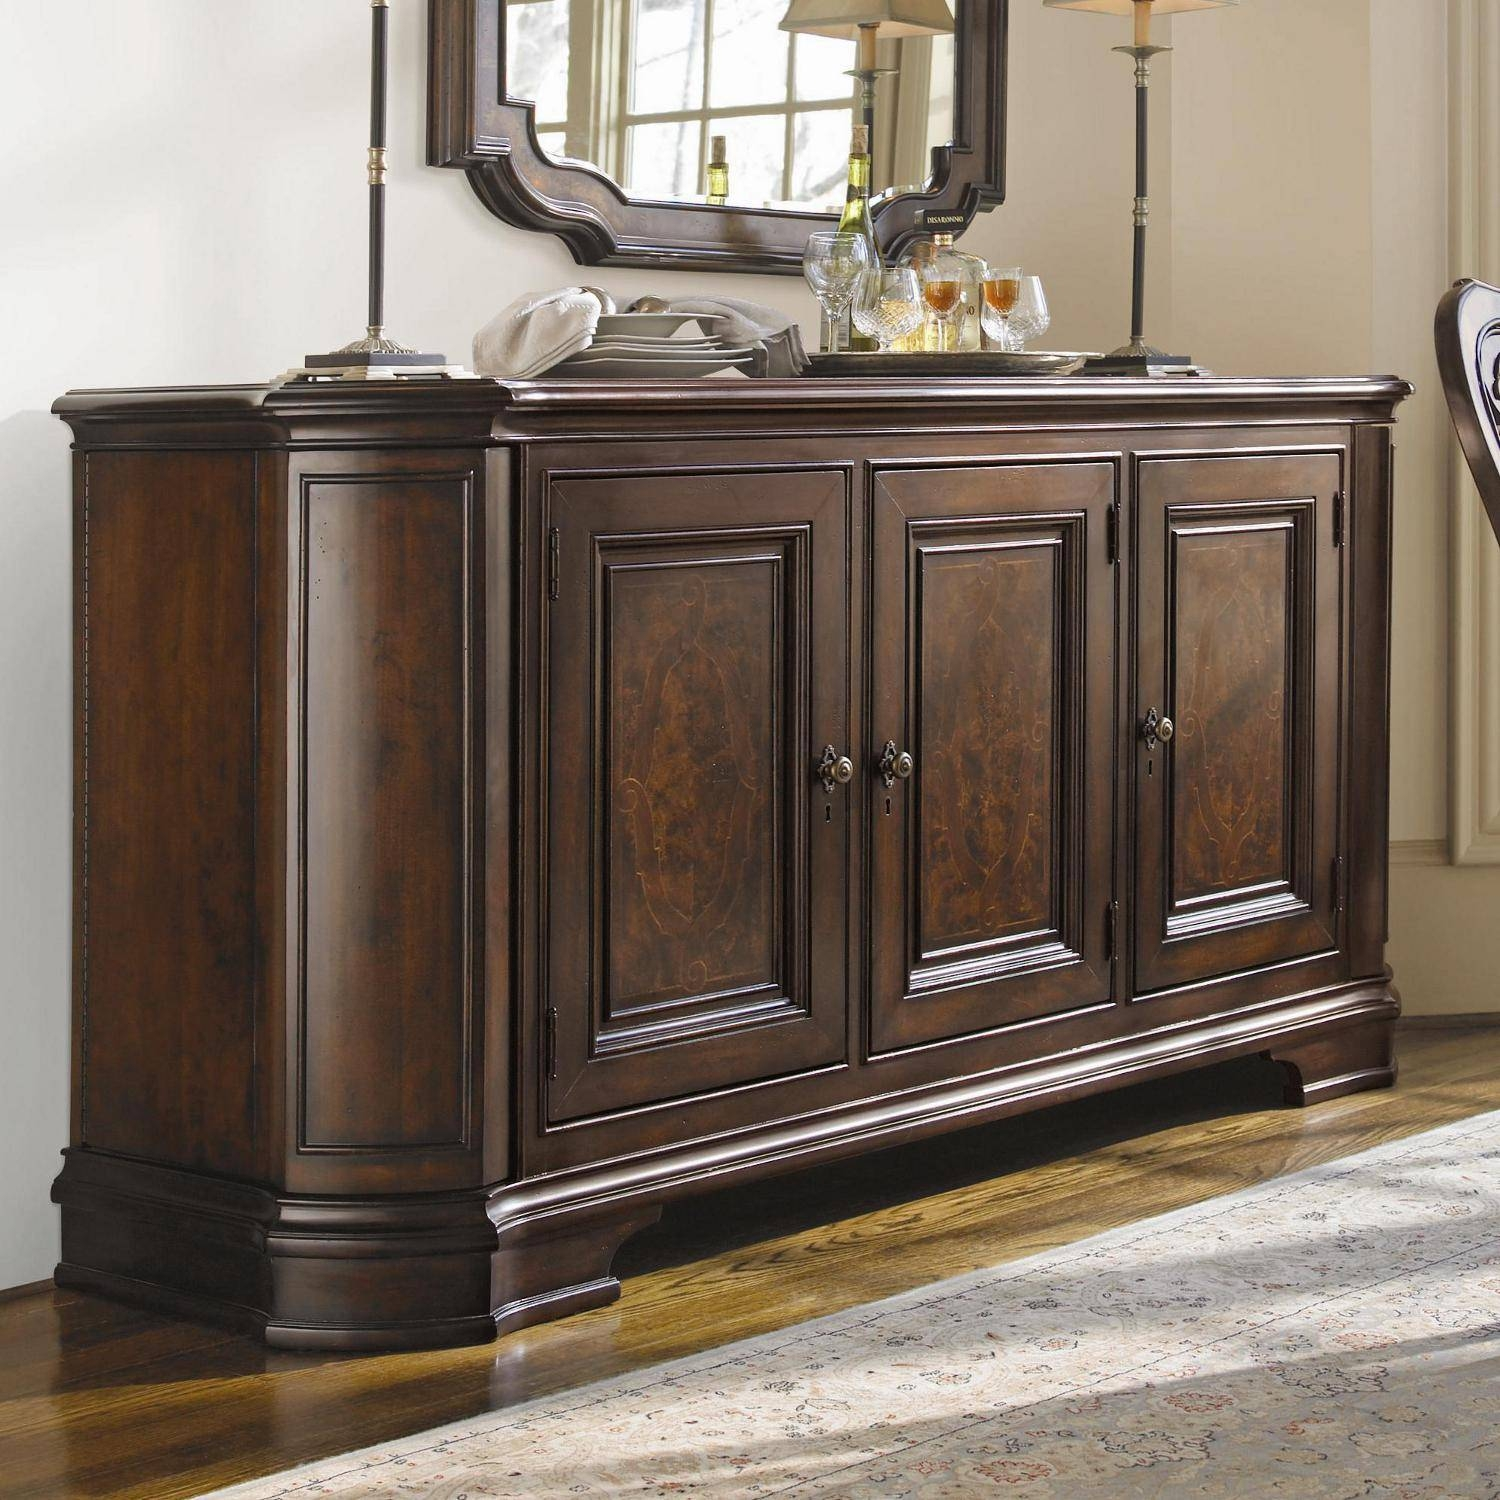 20 Photo Of Small Dark Wood Sideboard